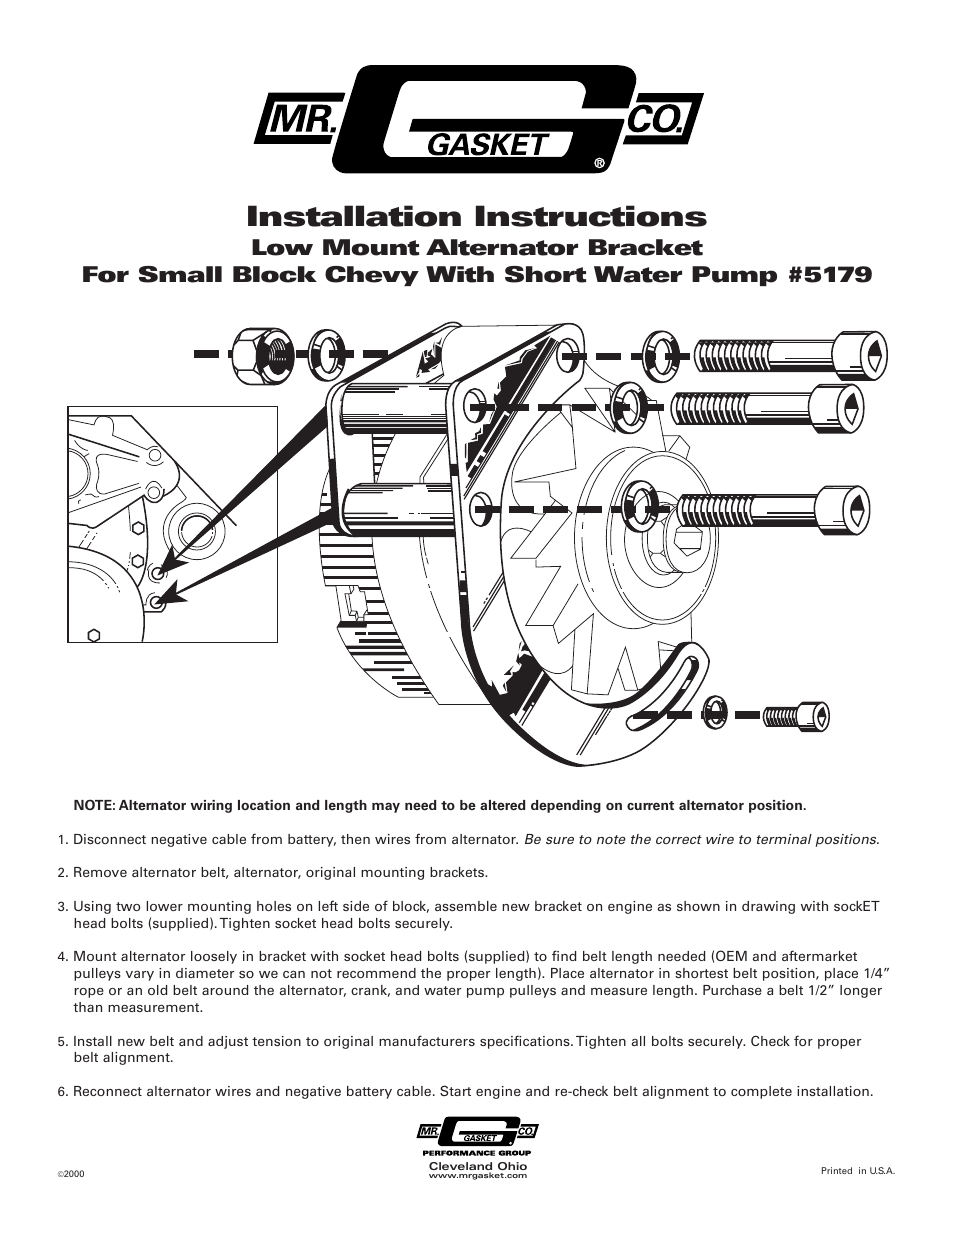 hight resolution of mr gasket 5179 low mount alternator brckt for sbc w swp user manual 1 page